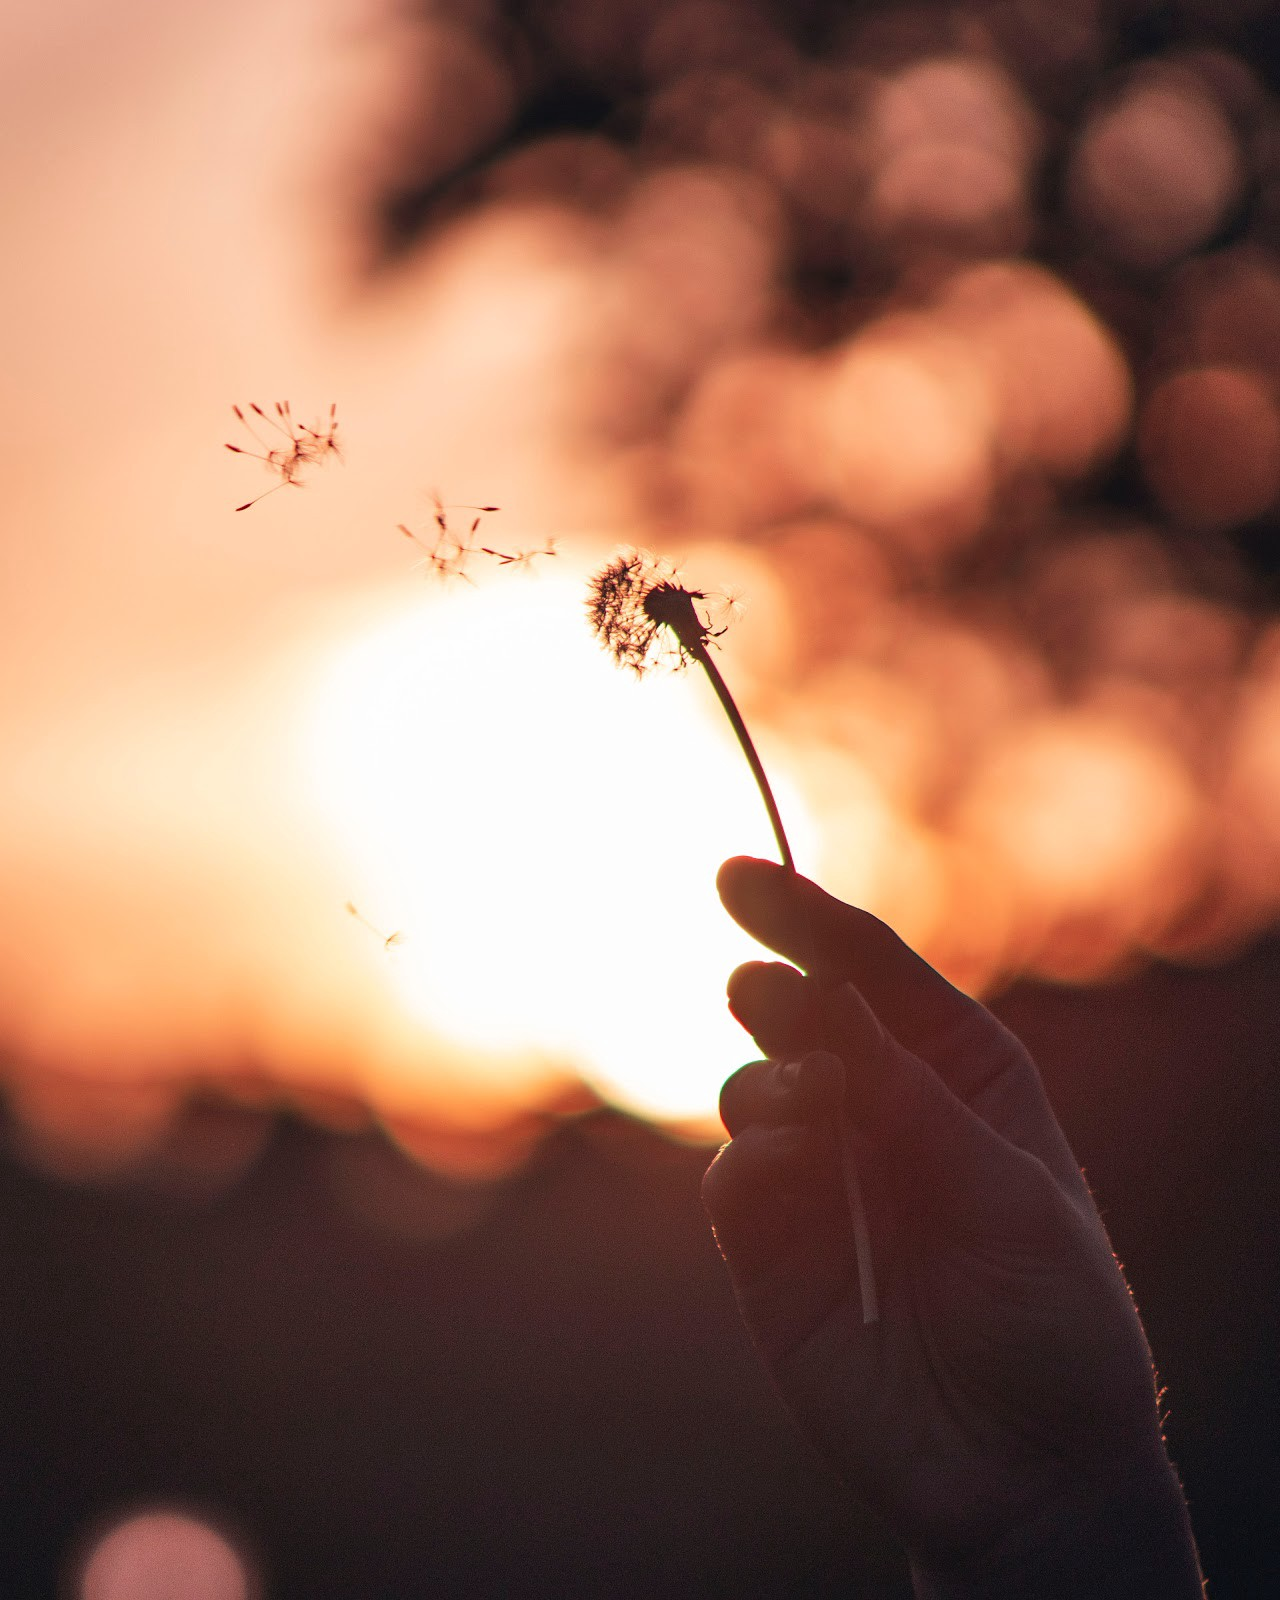 Person at sunset holding a dandelion with petals flying away in the breeze